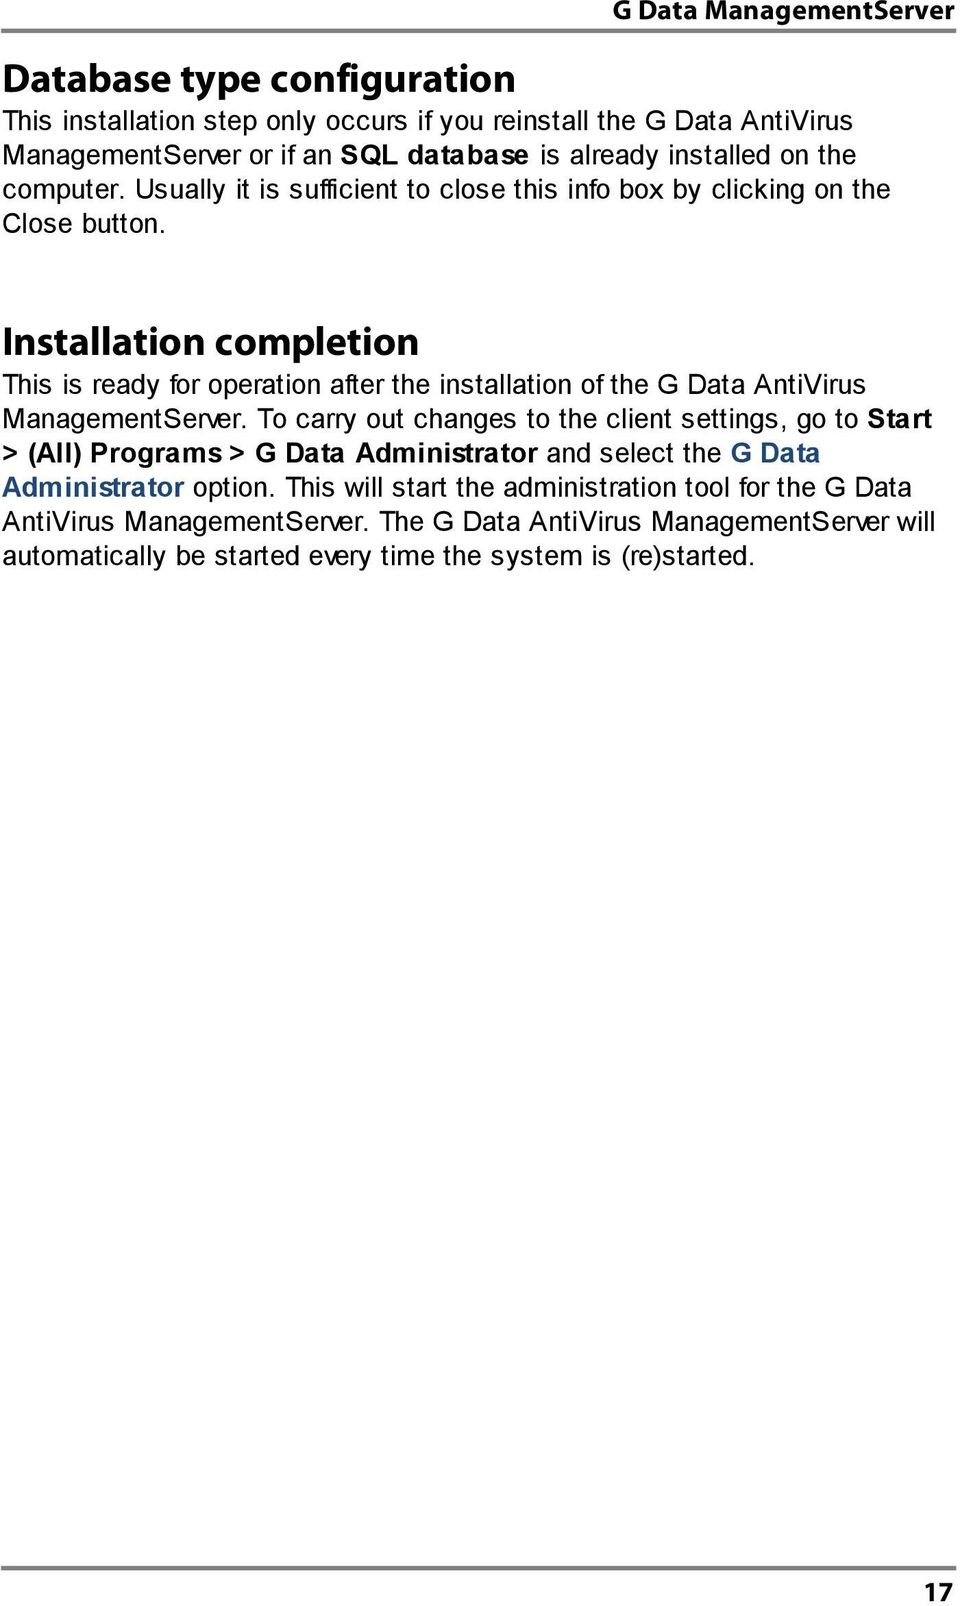 Installation completion This is ready for operation after the installation of the G Data AntiVirus ManagementServer.